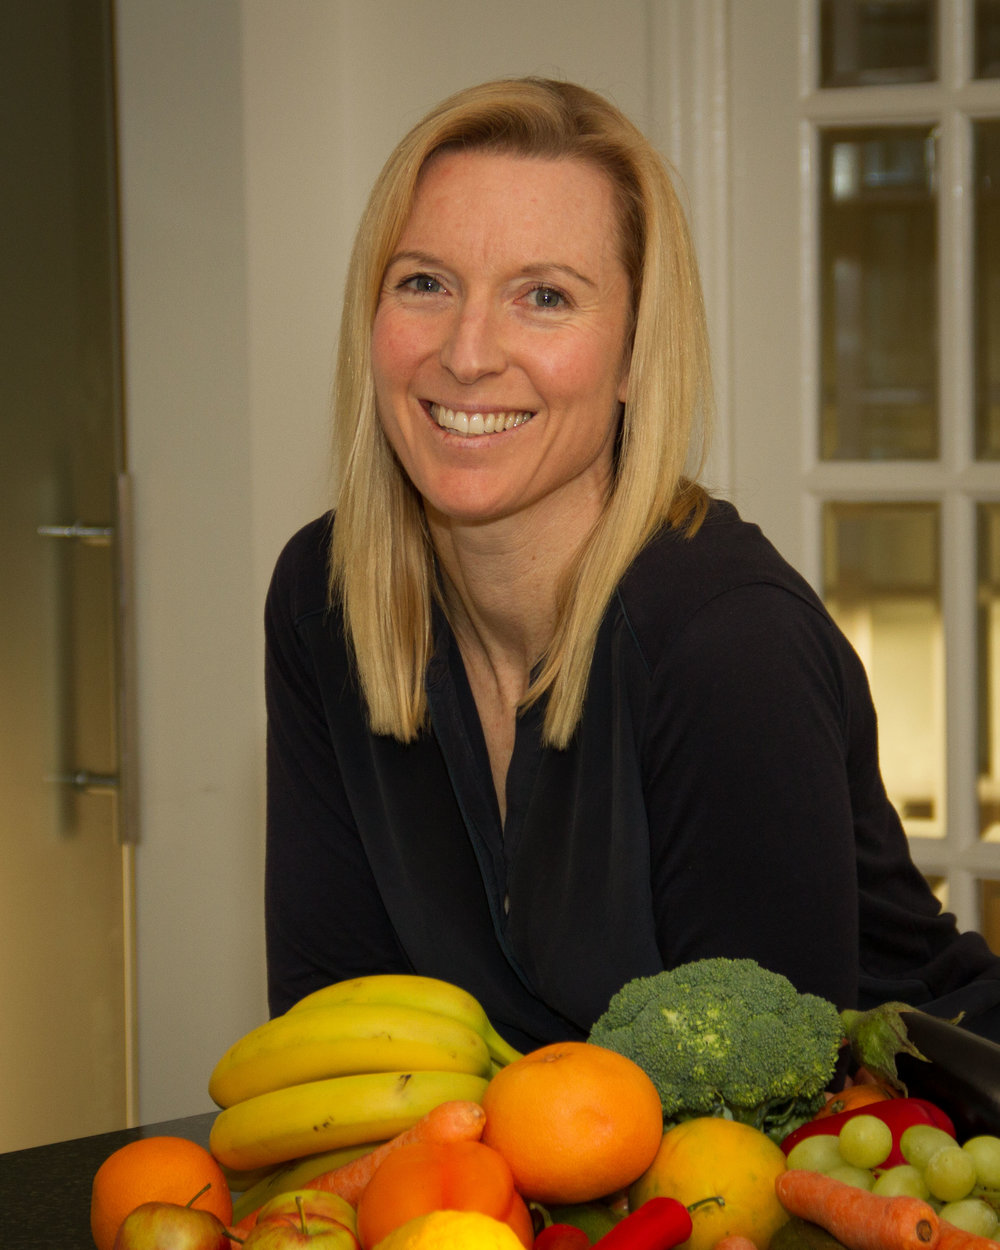 Debbie in her kitchen. (Credit to Luci Schofield Photography)